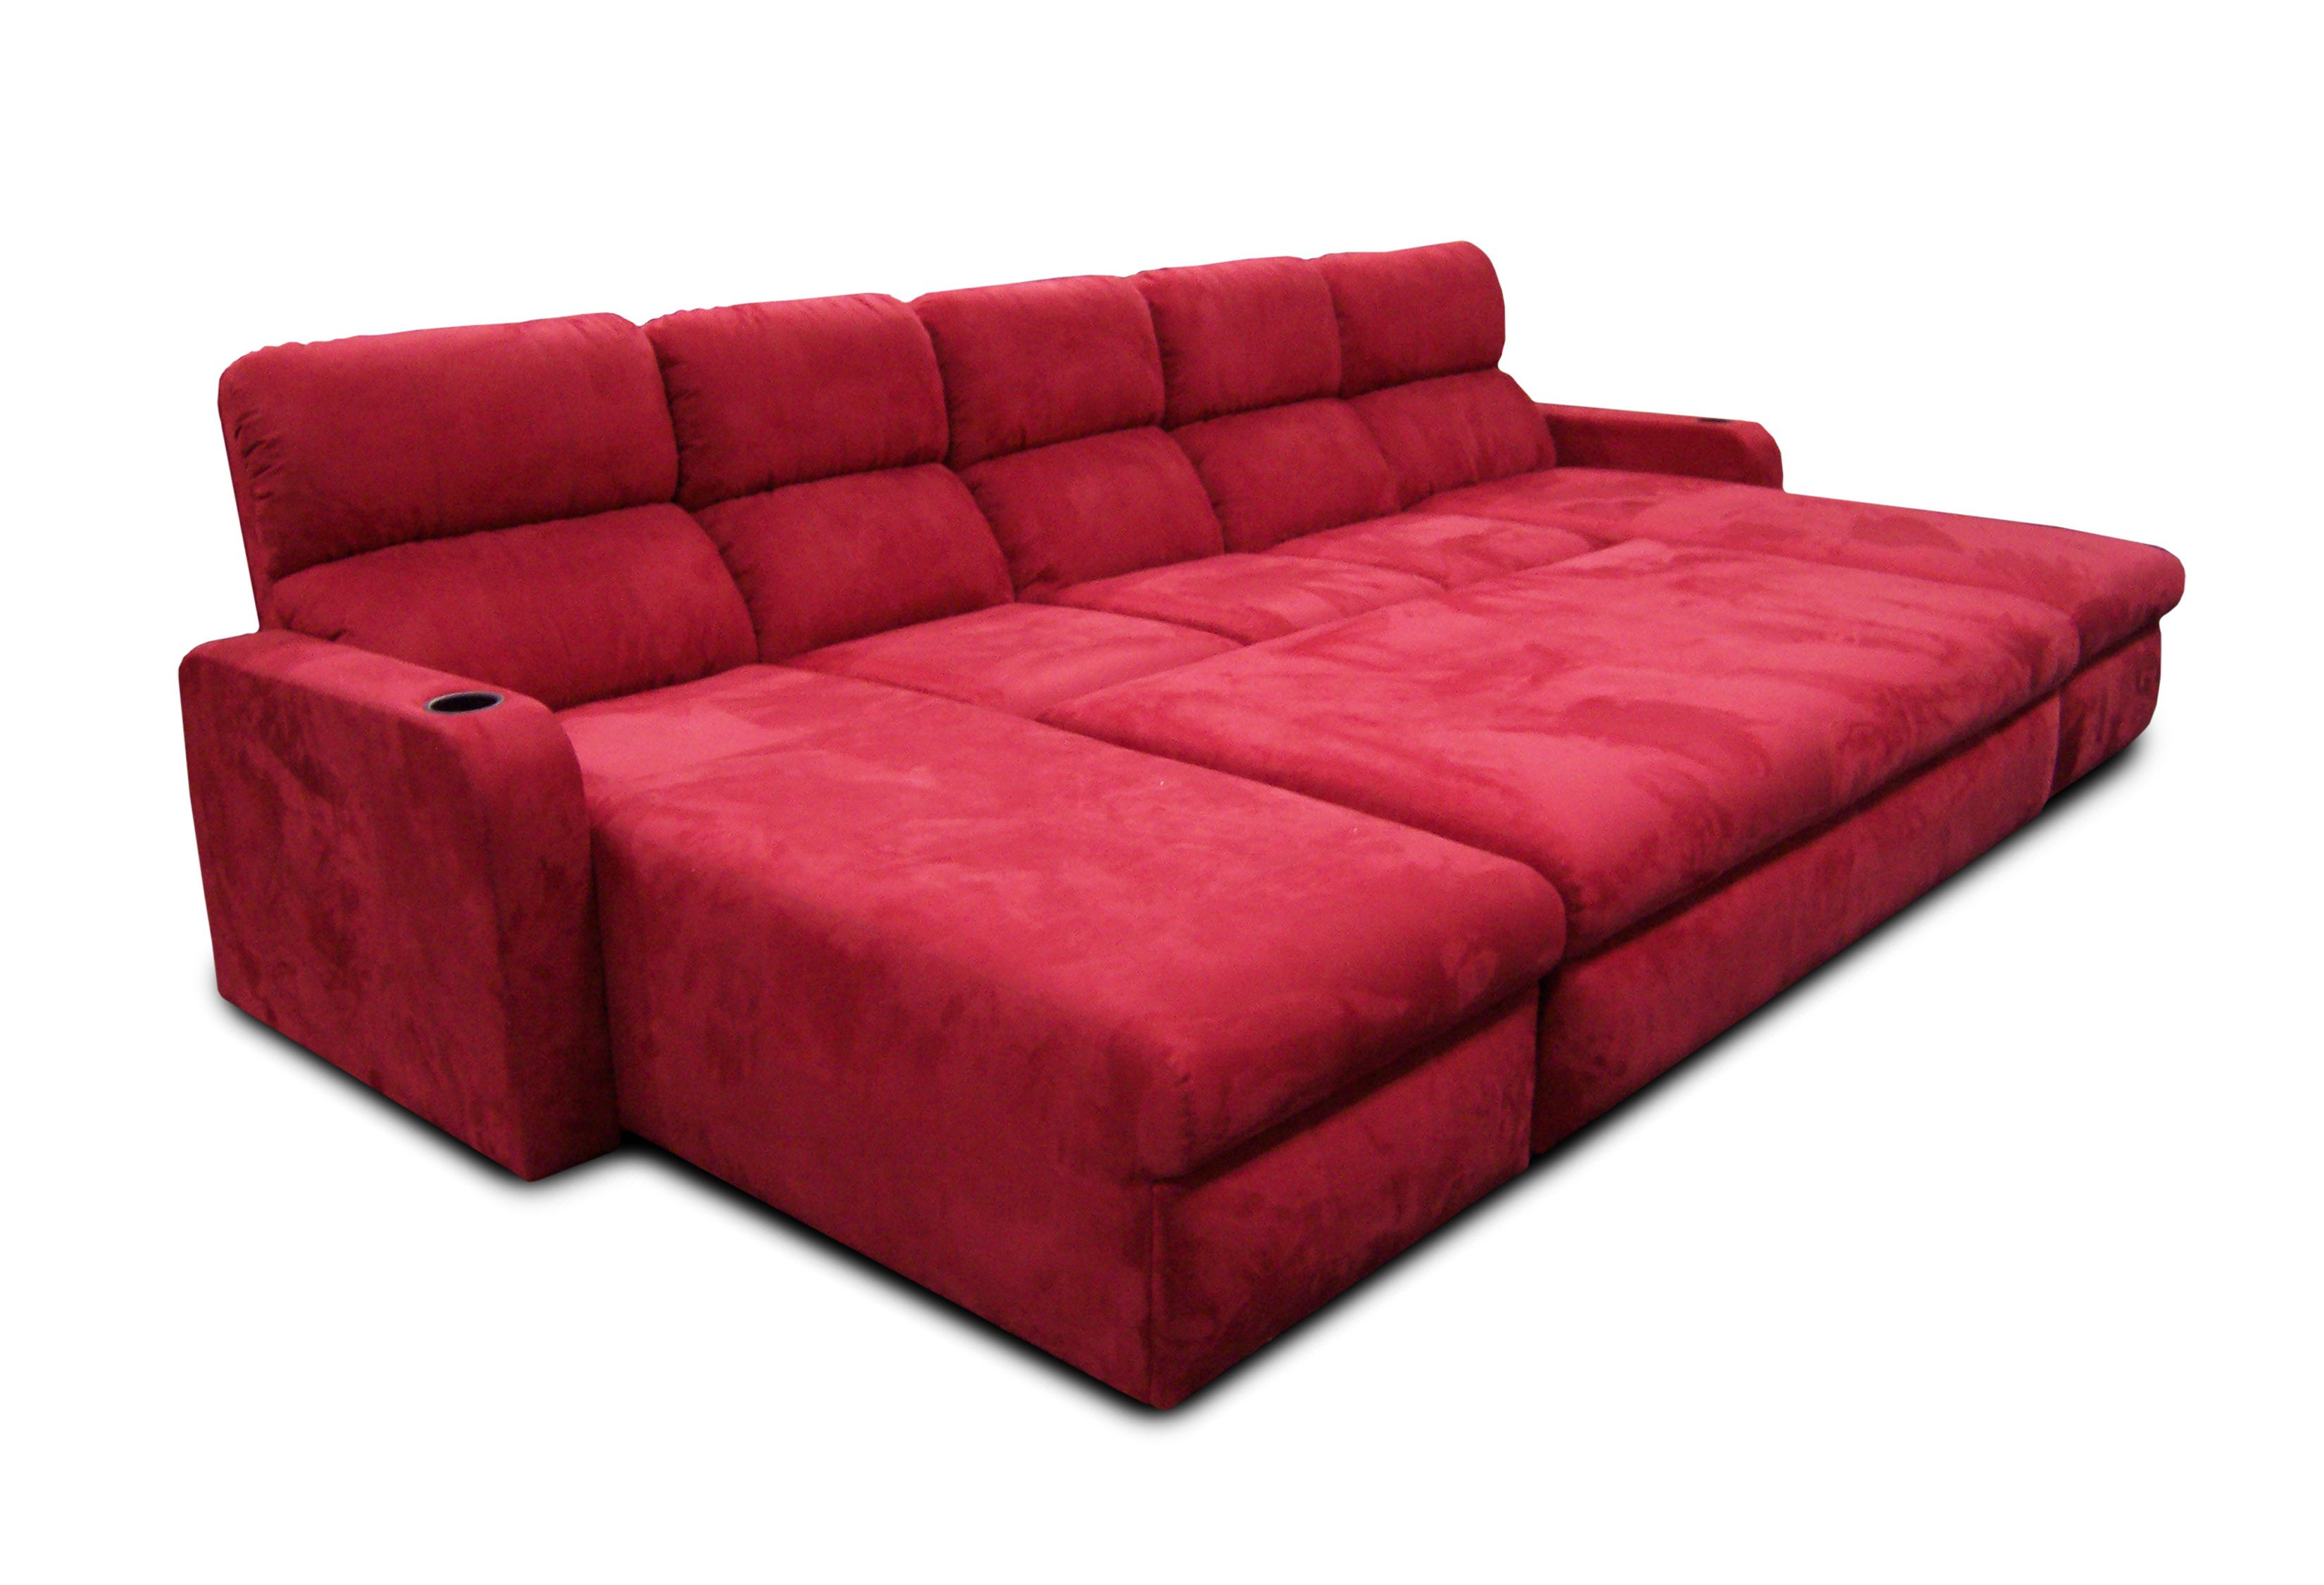 Double Chaise Lounge Sofa Best Collections Of Sofas And Couches